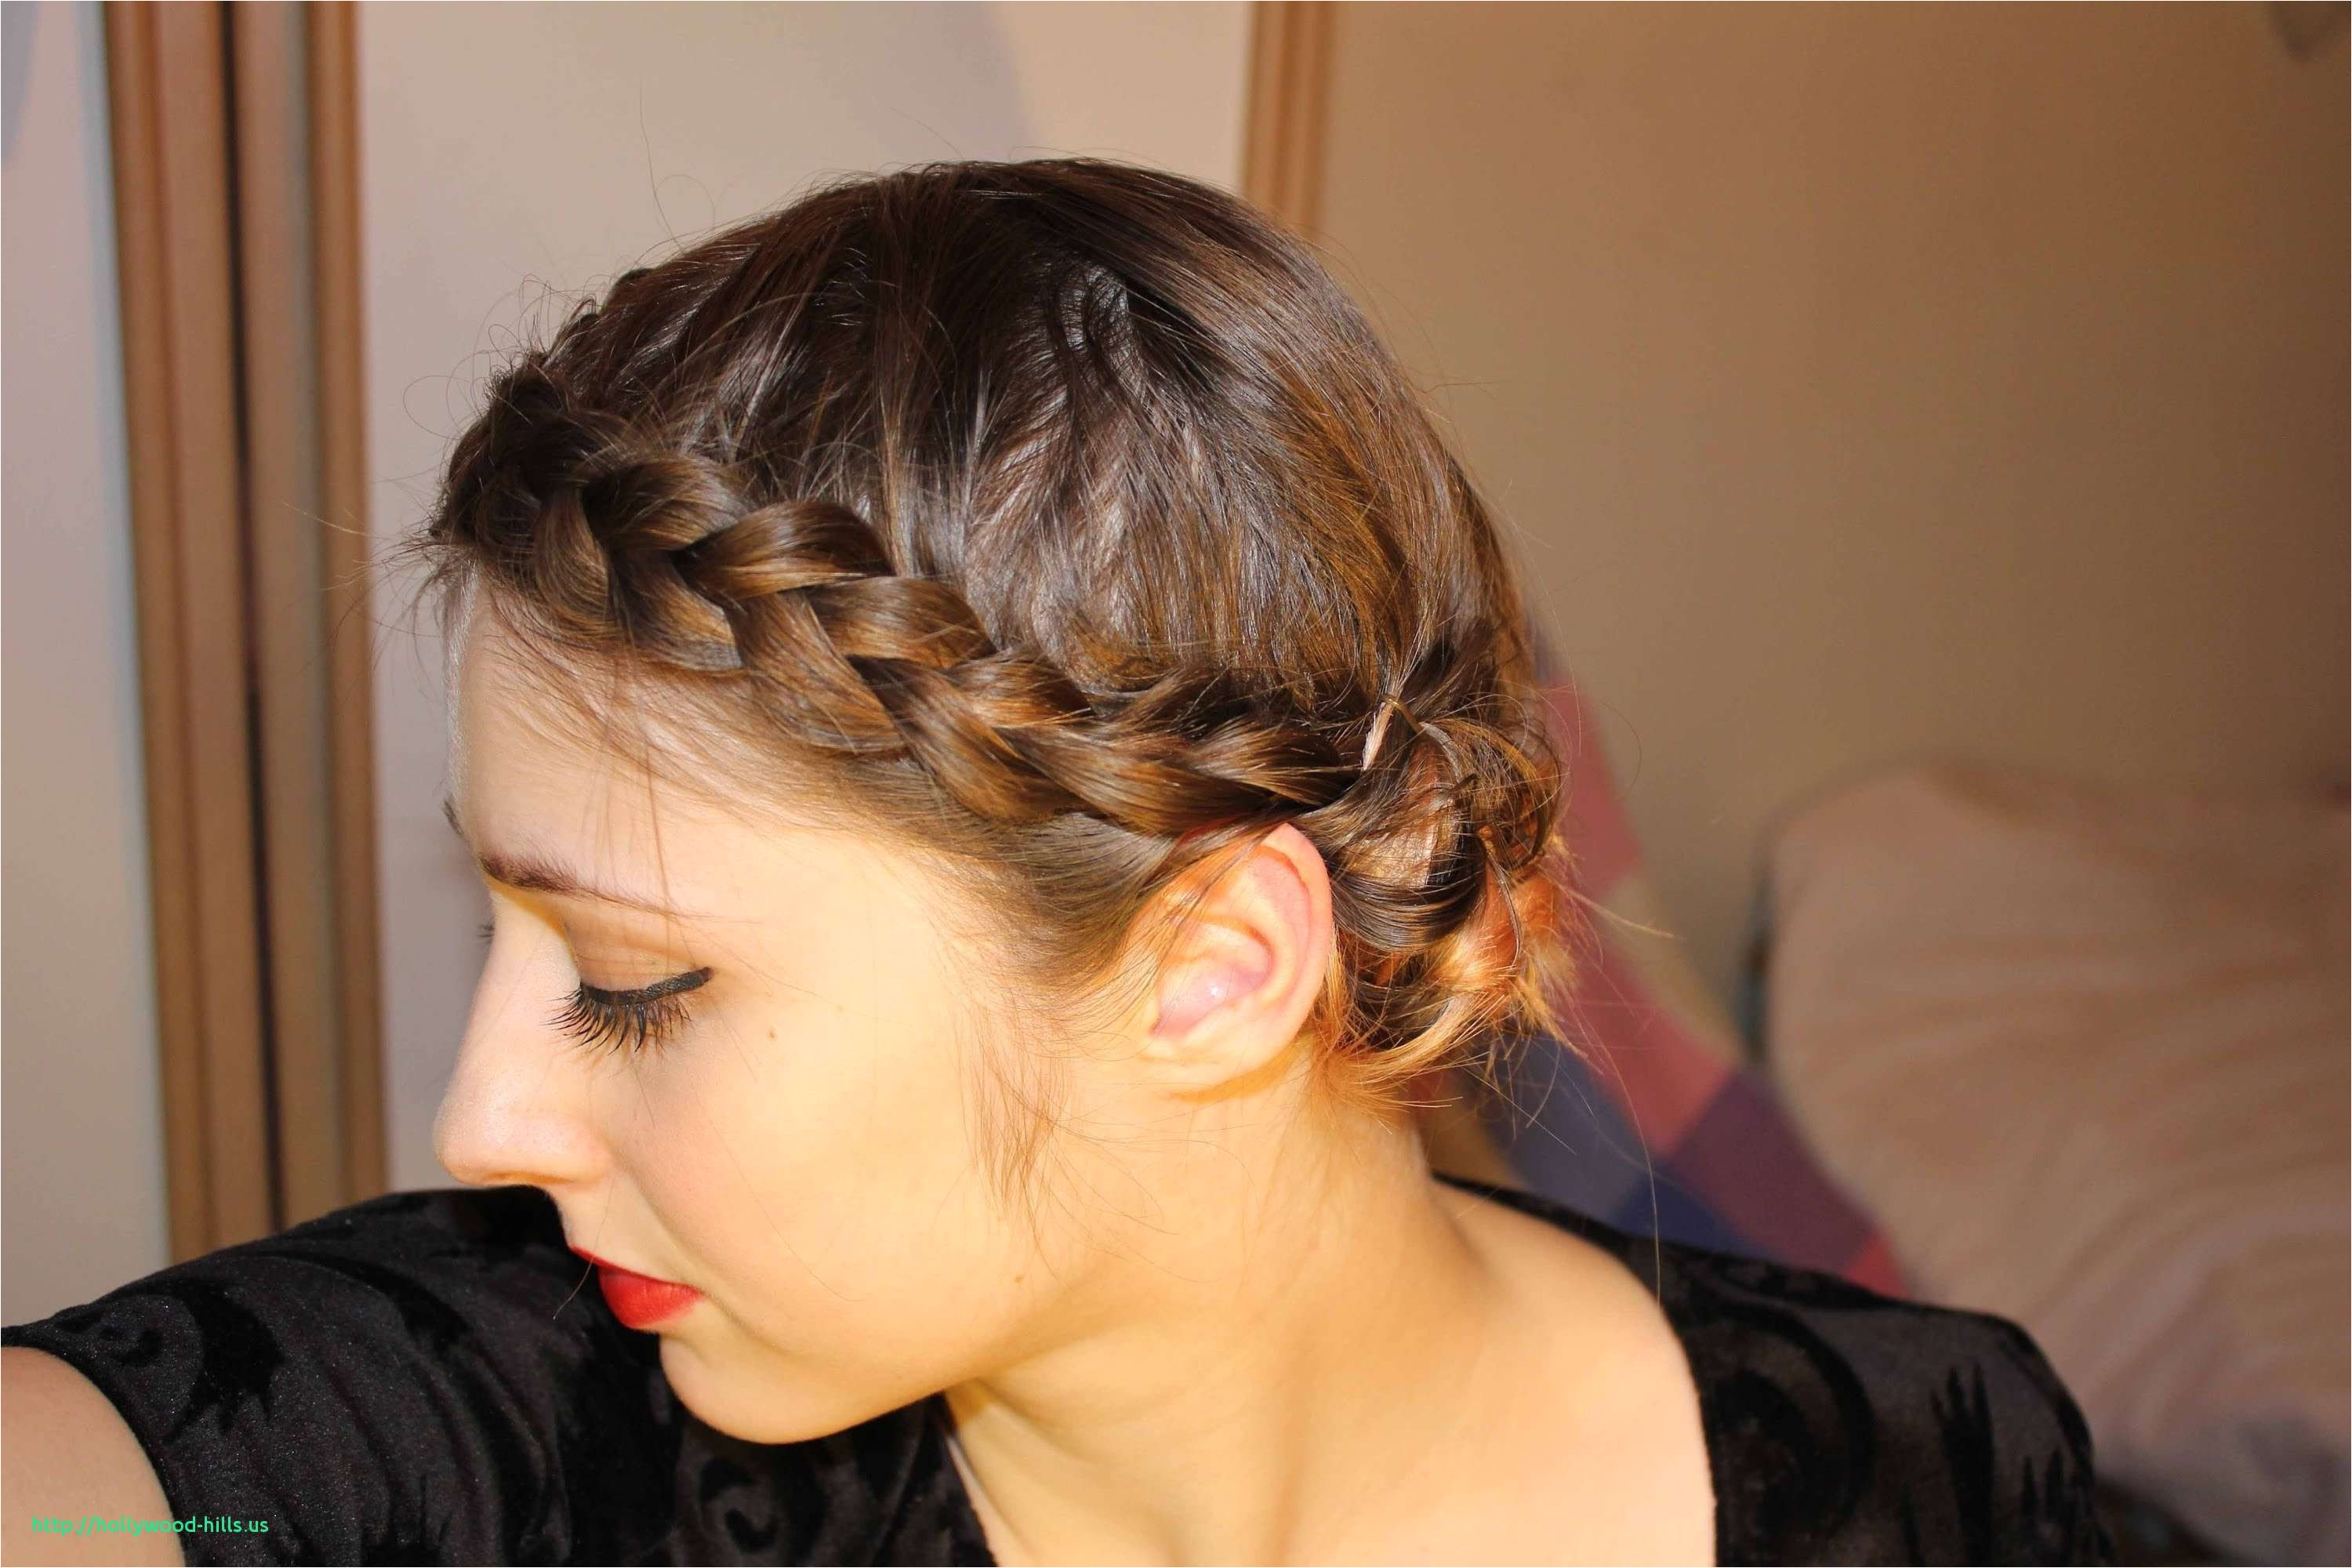 Flower Girl Braided Hairstyles New Dreadlock Updo Hairstyles New Updo Braid Hairstyles Black Hair